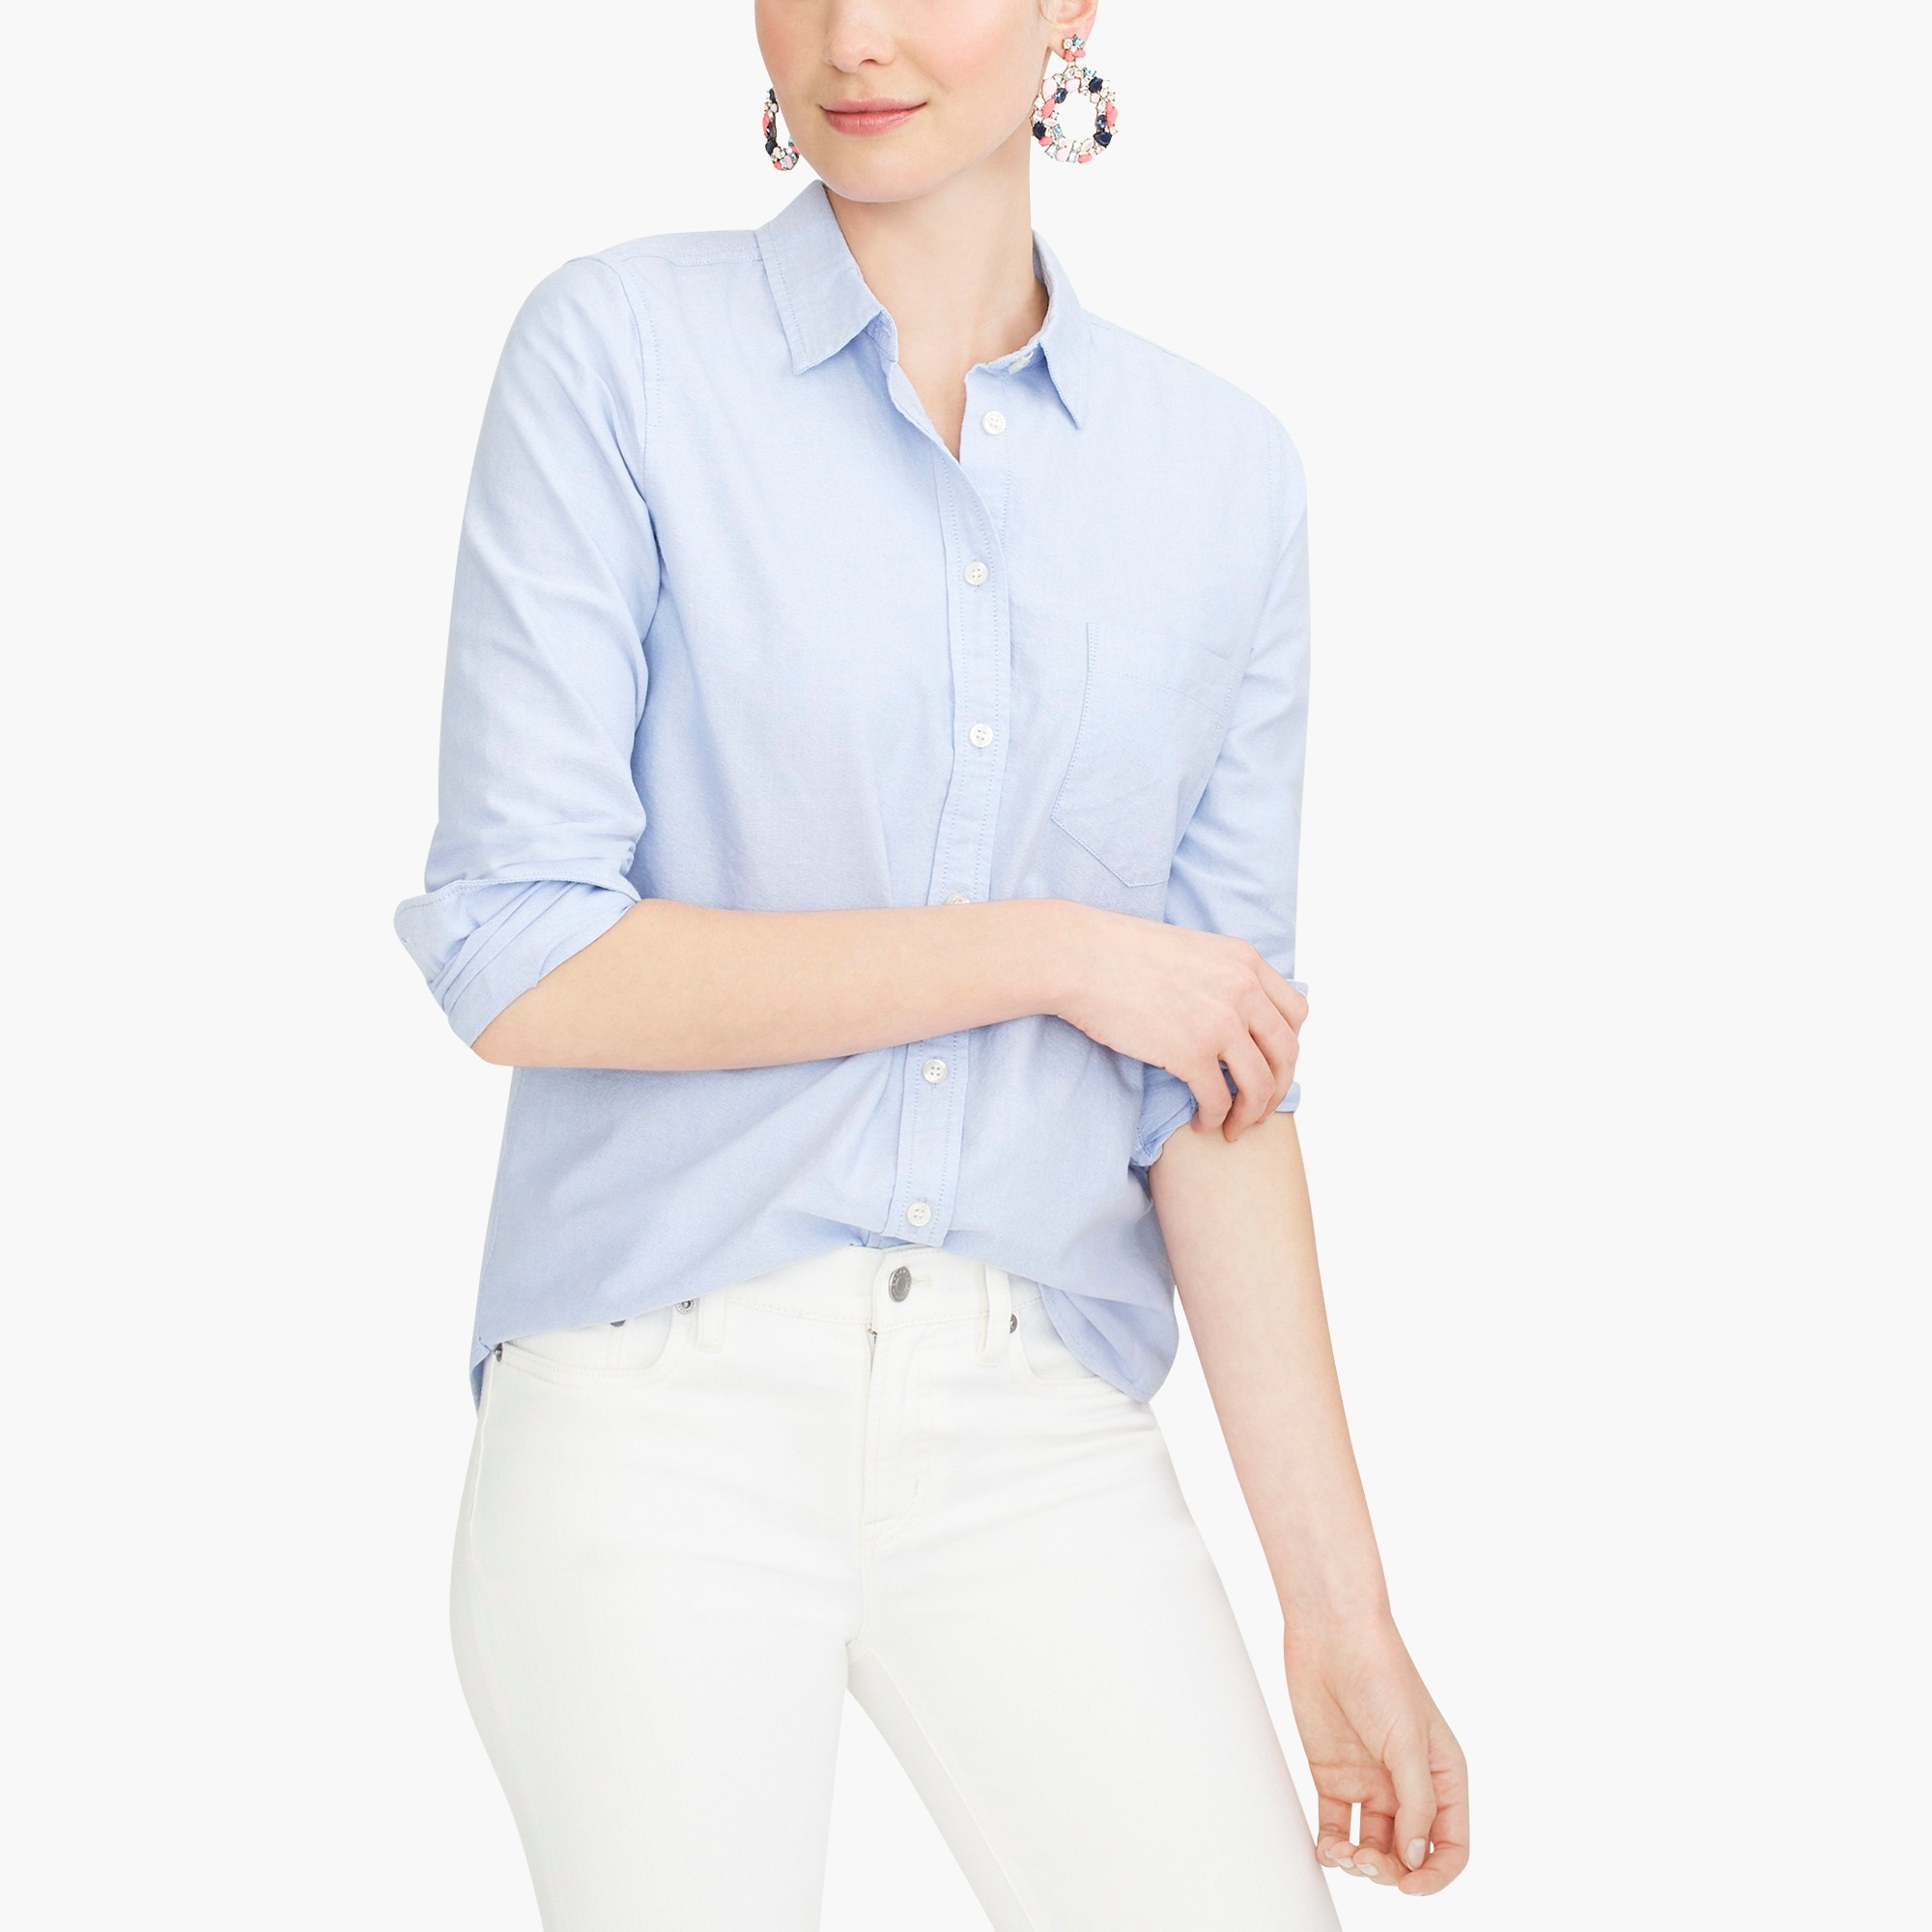 J.Crew Mercantile Oxford shirt